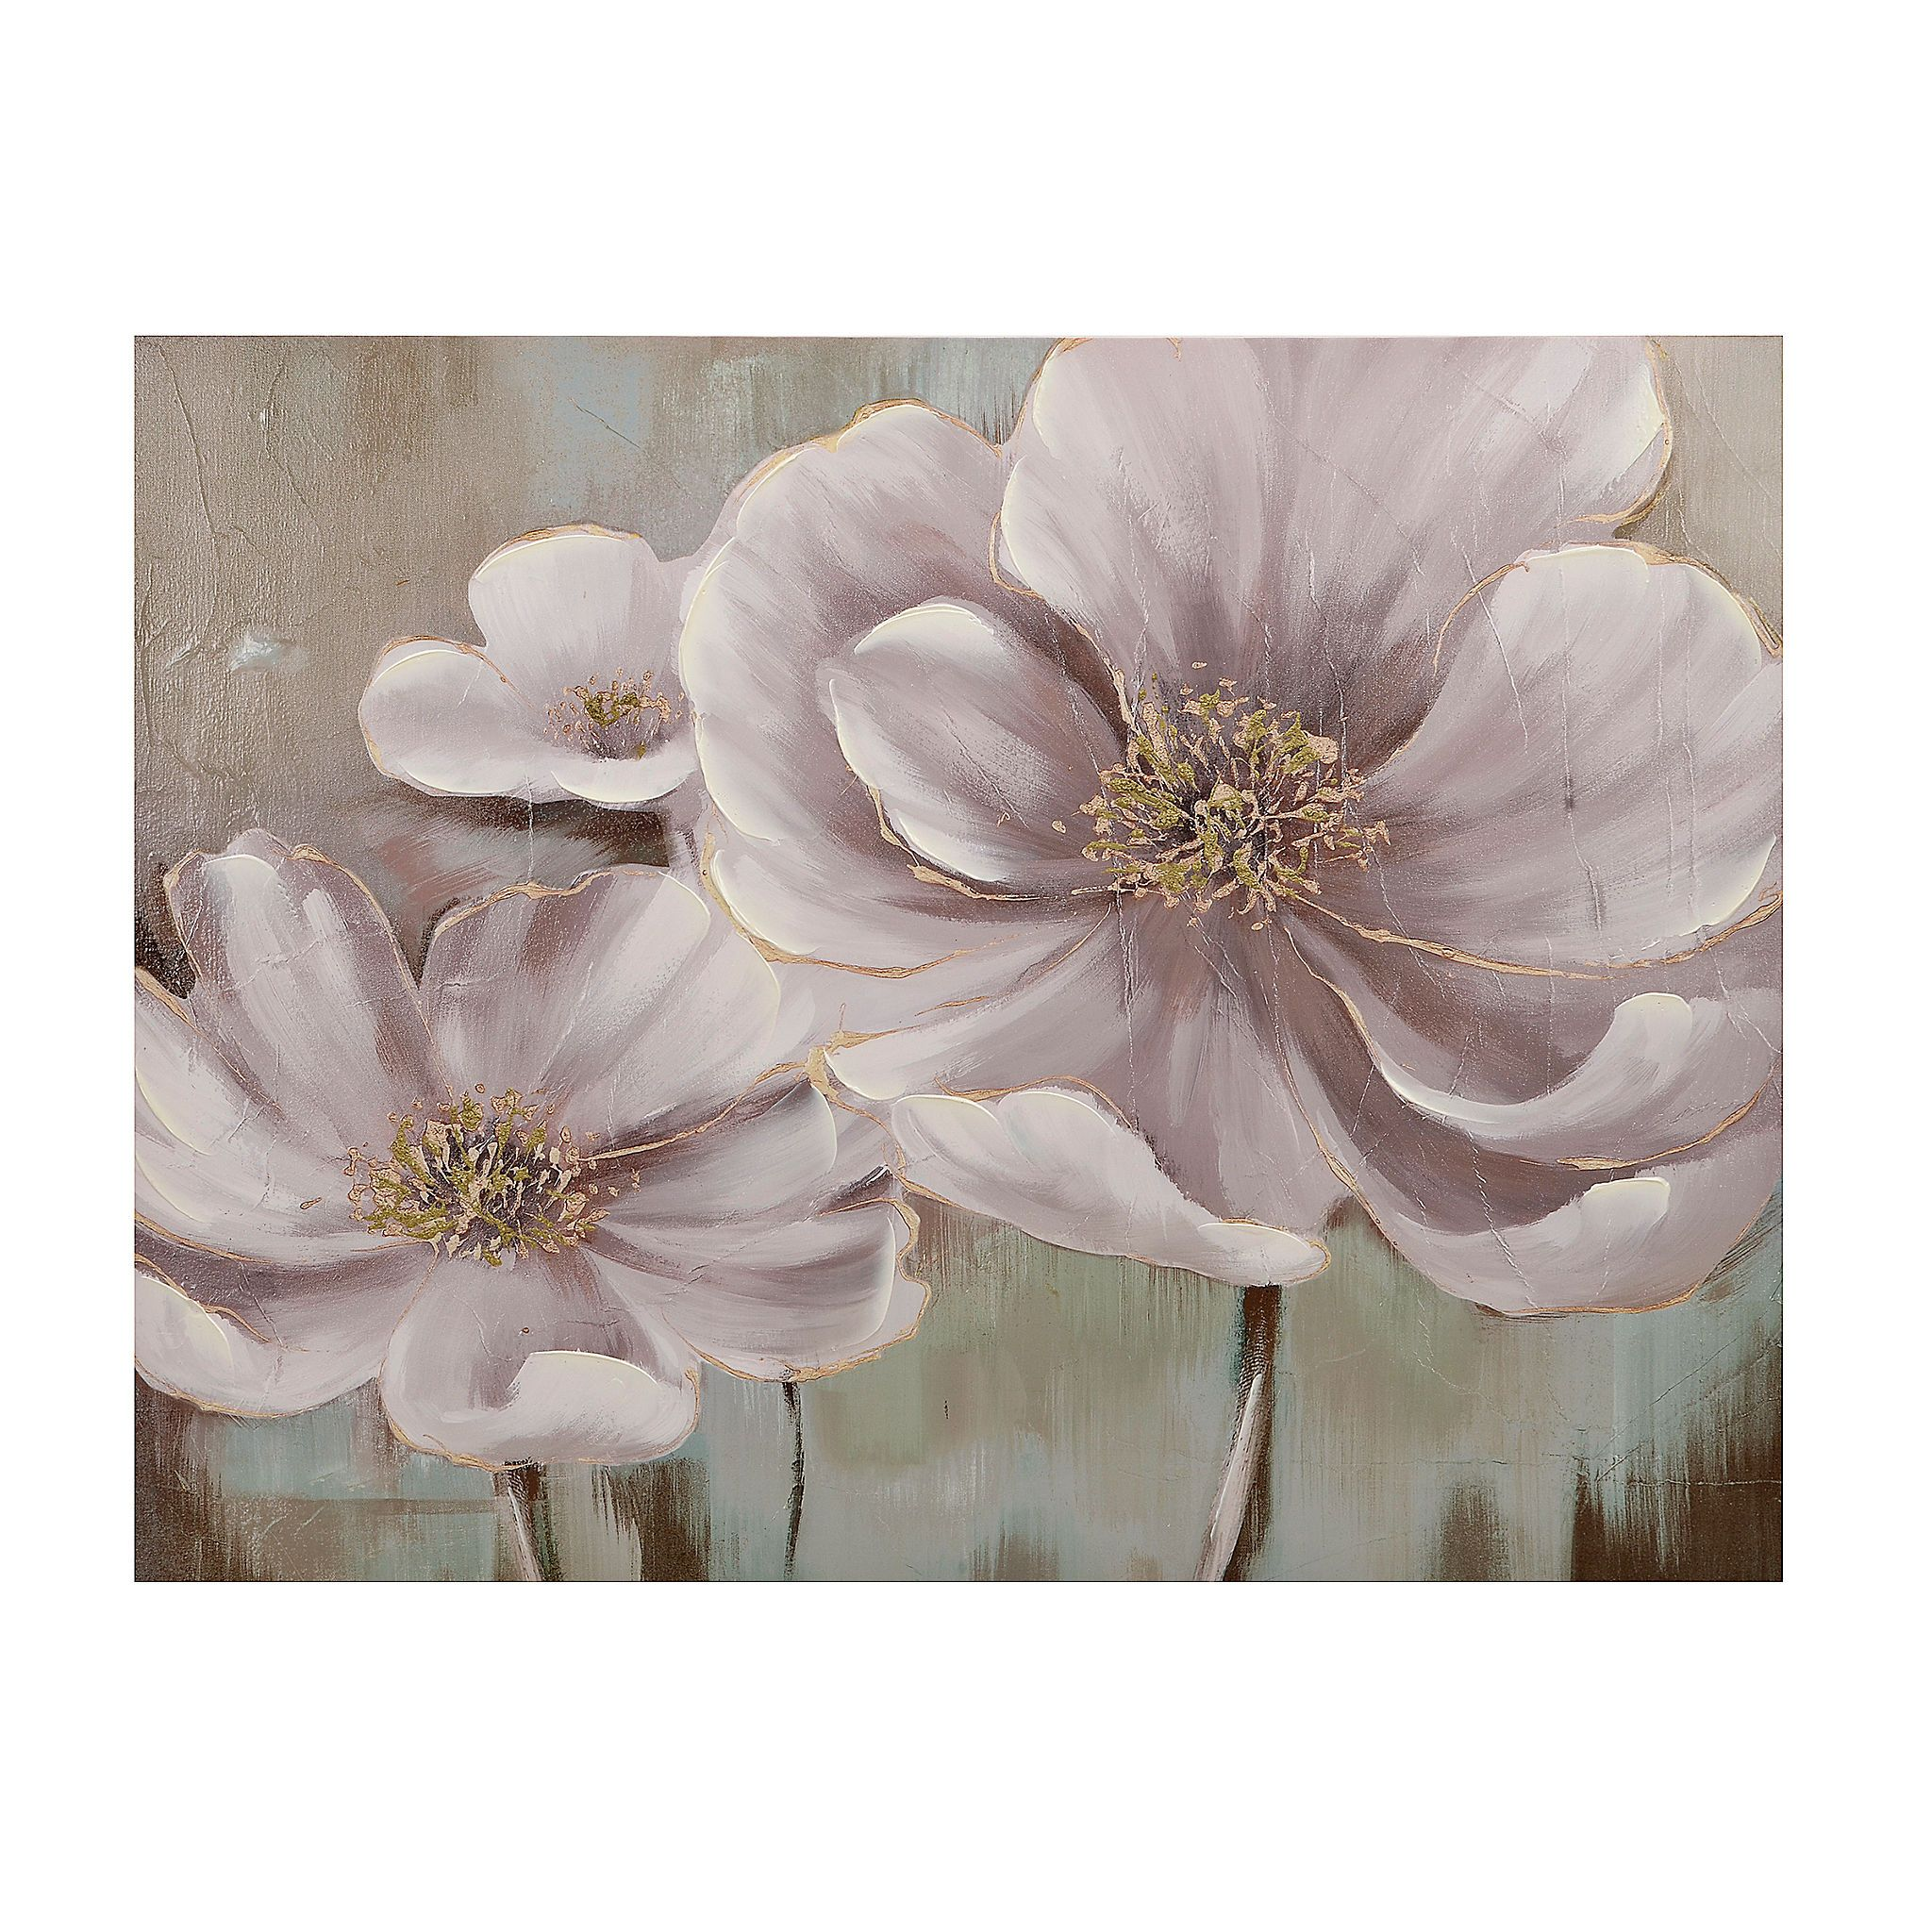 Floral Eloquence Canvas Art Print | Canvases, Floral and Printing